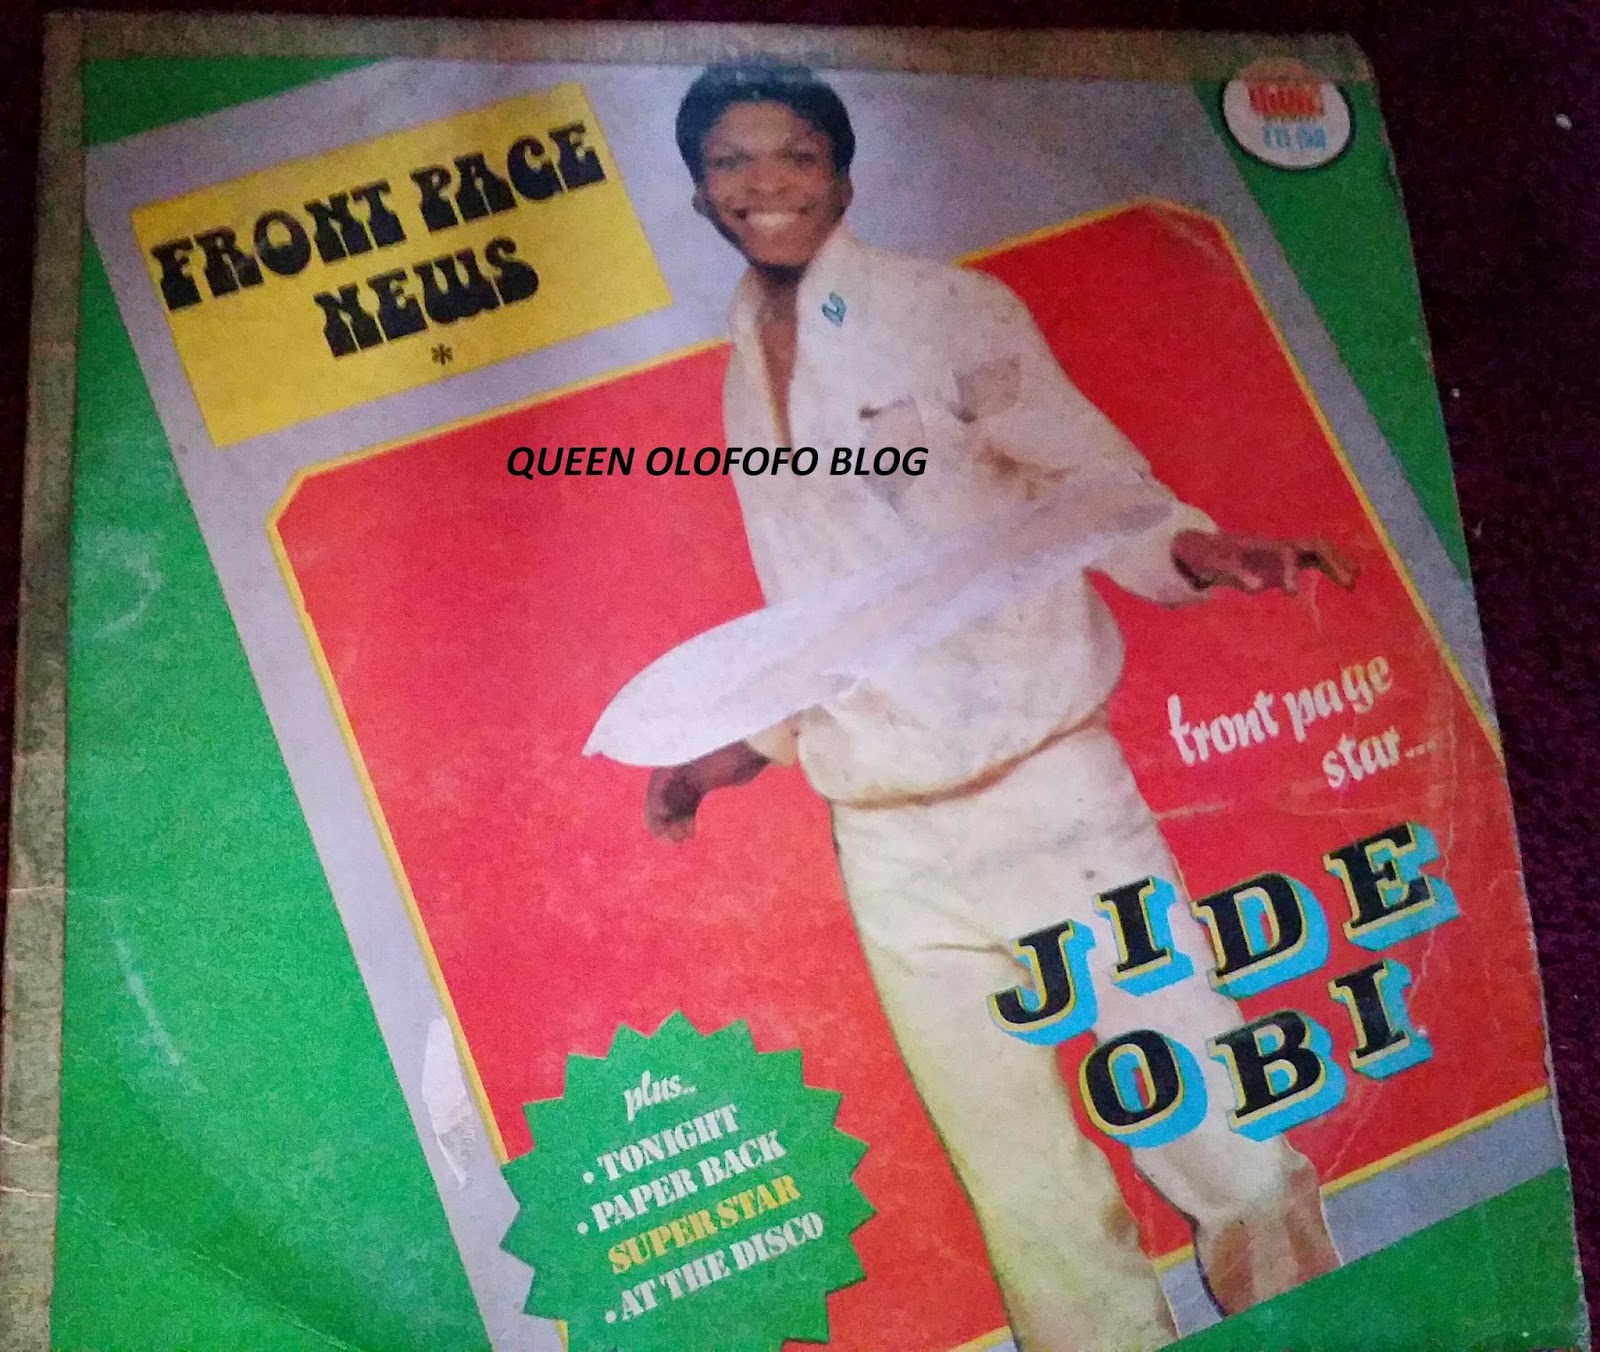 Jide Obi again with his good looks was a Nigerian old school favourite